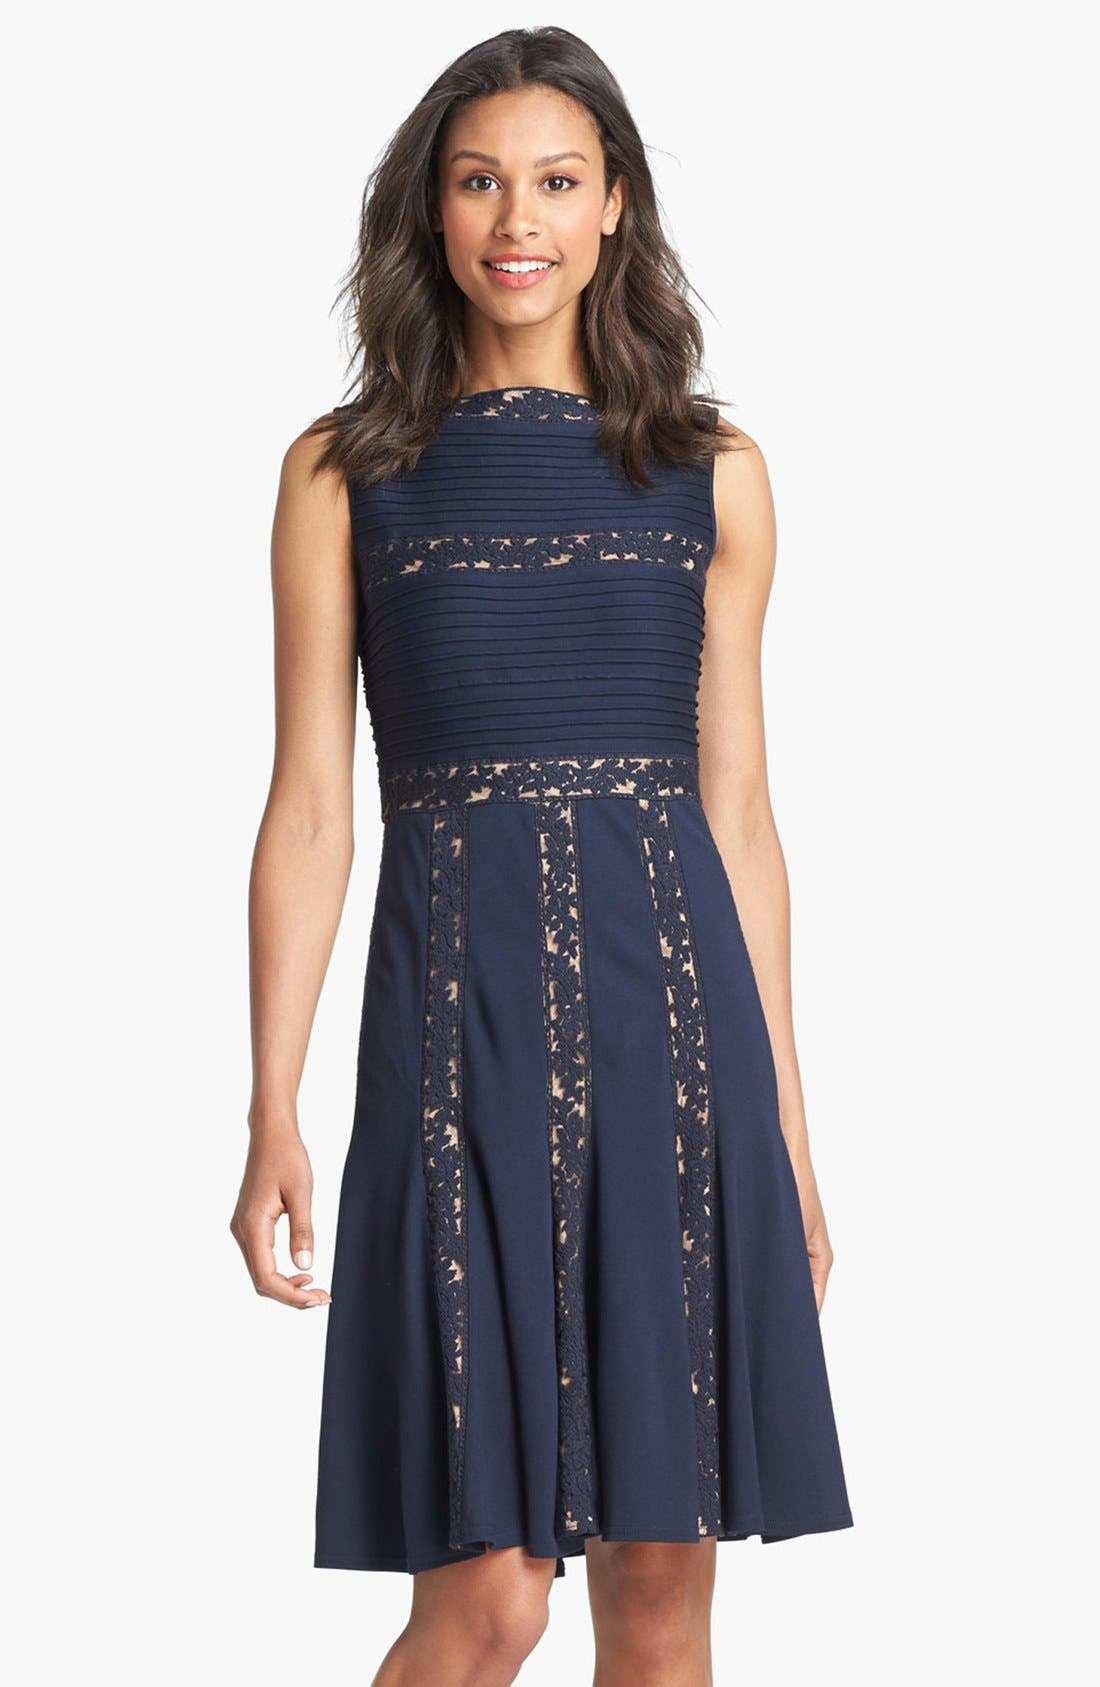 Alternate Image 1 Selected - Tadashi Shoji Lace Inset Jersey Fit & Flare Dress (Regular & Petite)